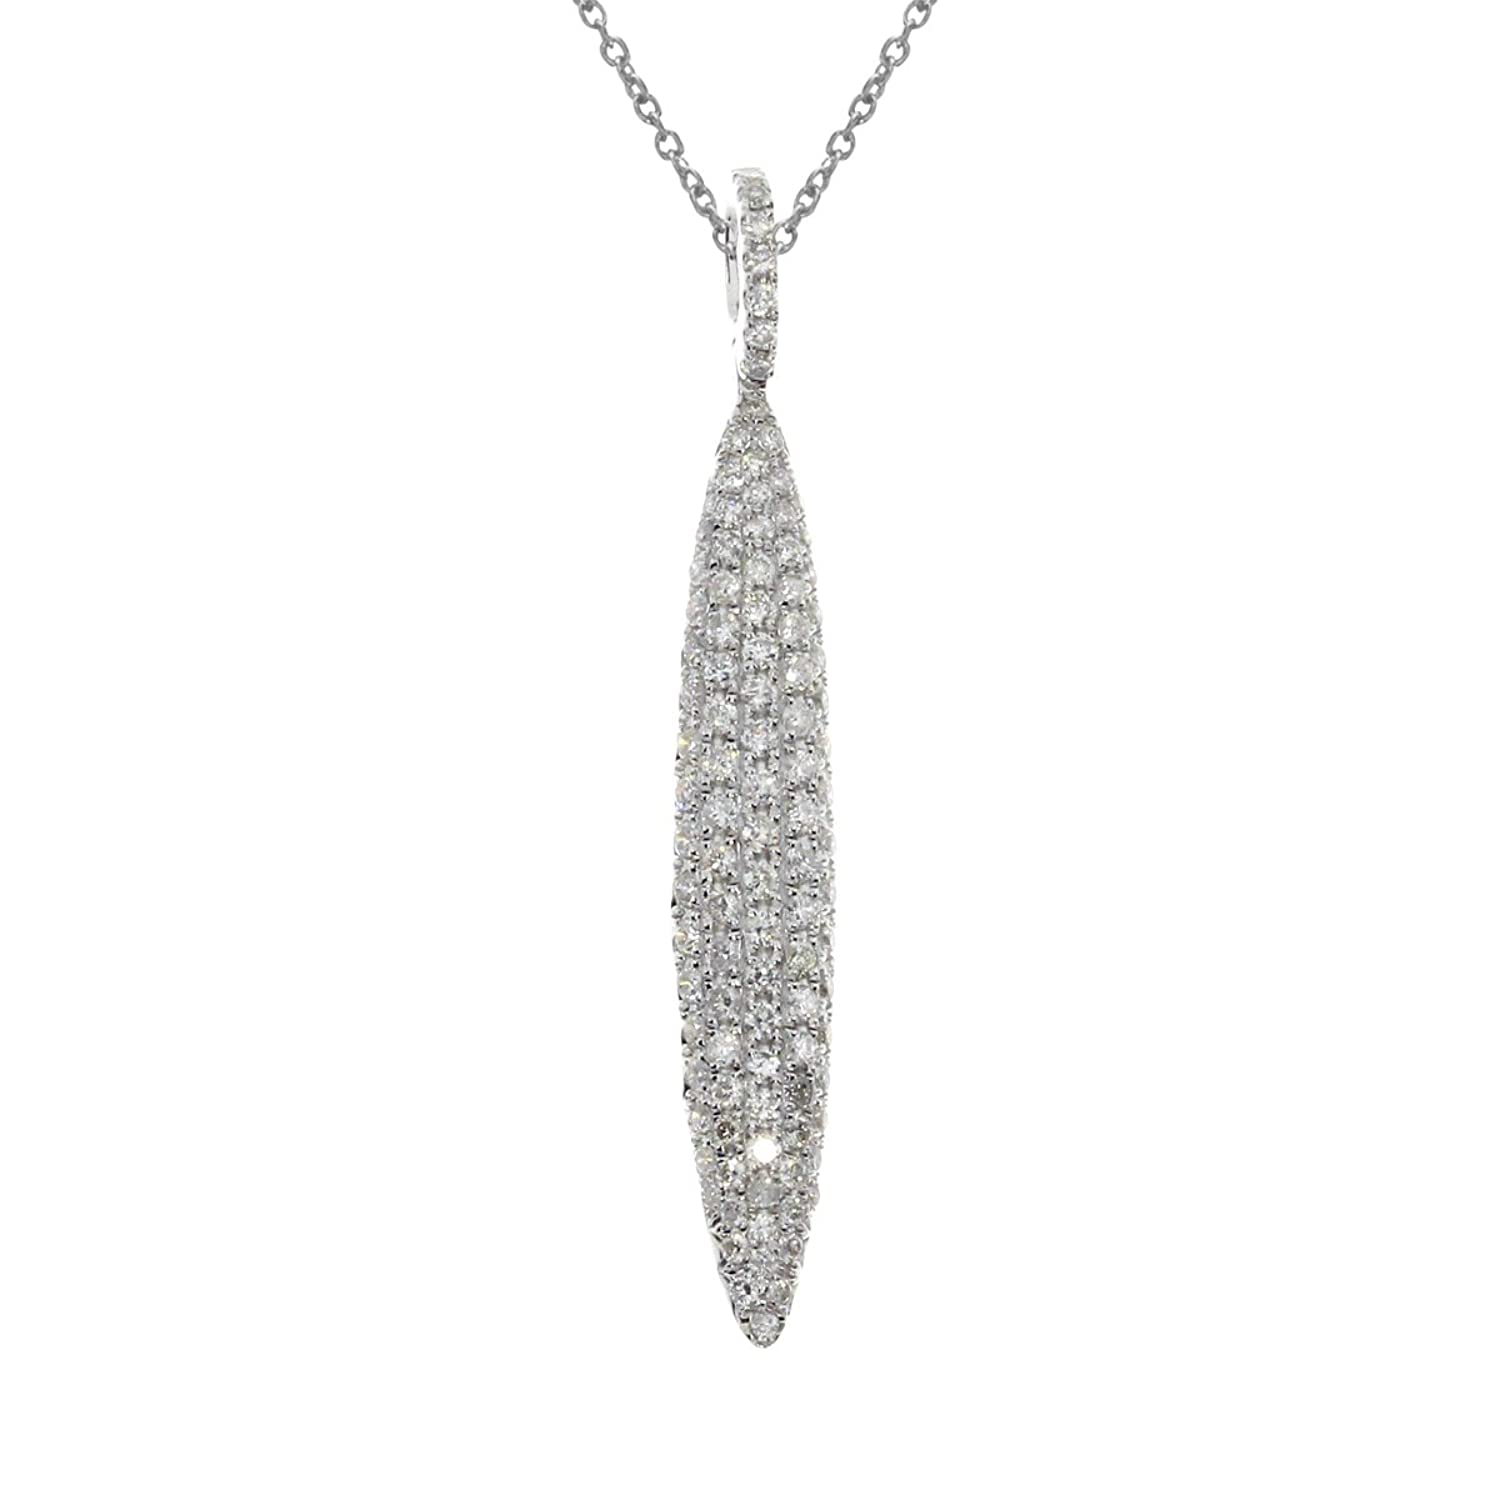 14K White Gold Long Fashion Diamond Pendant with 18